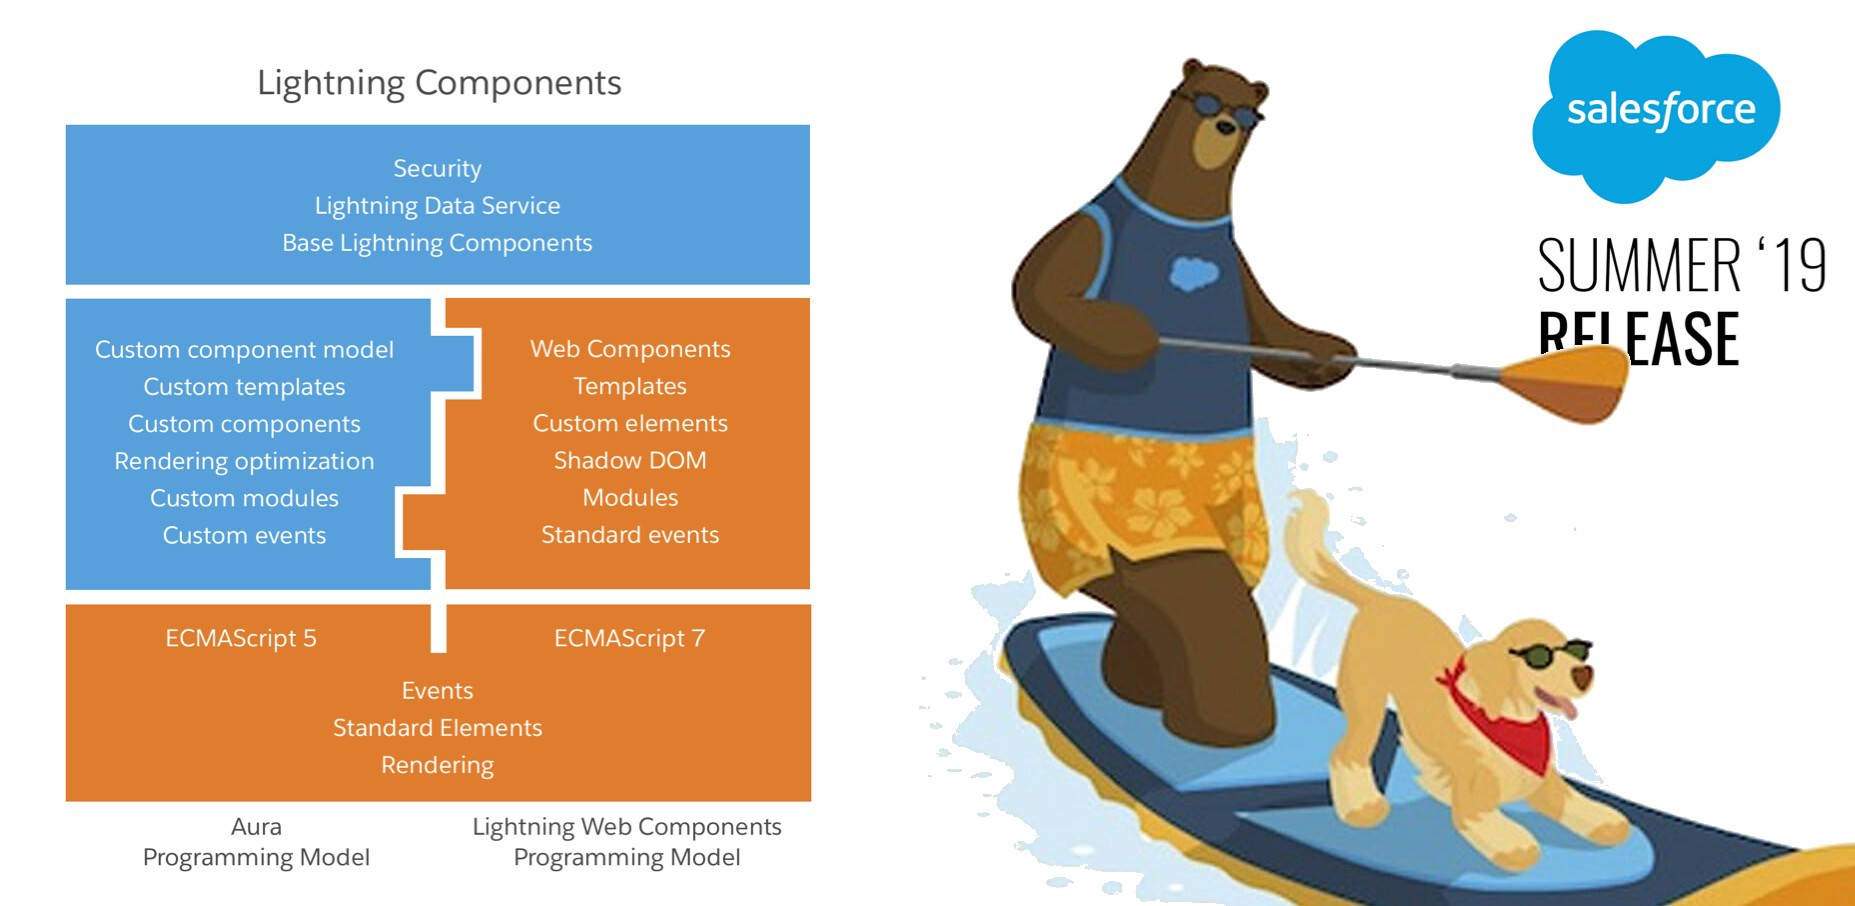 Lightning Out Supports Lightning Web Components (LWC